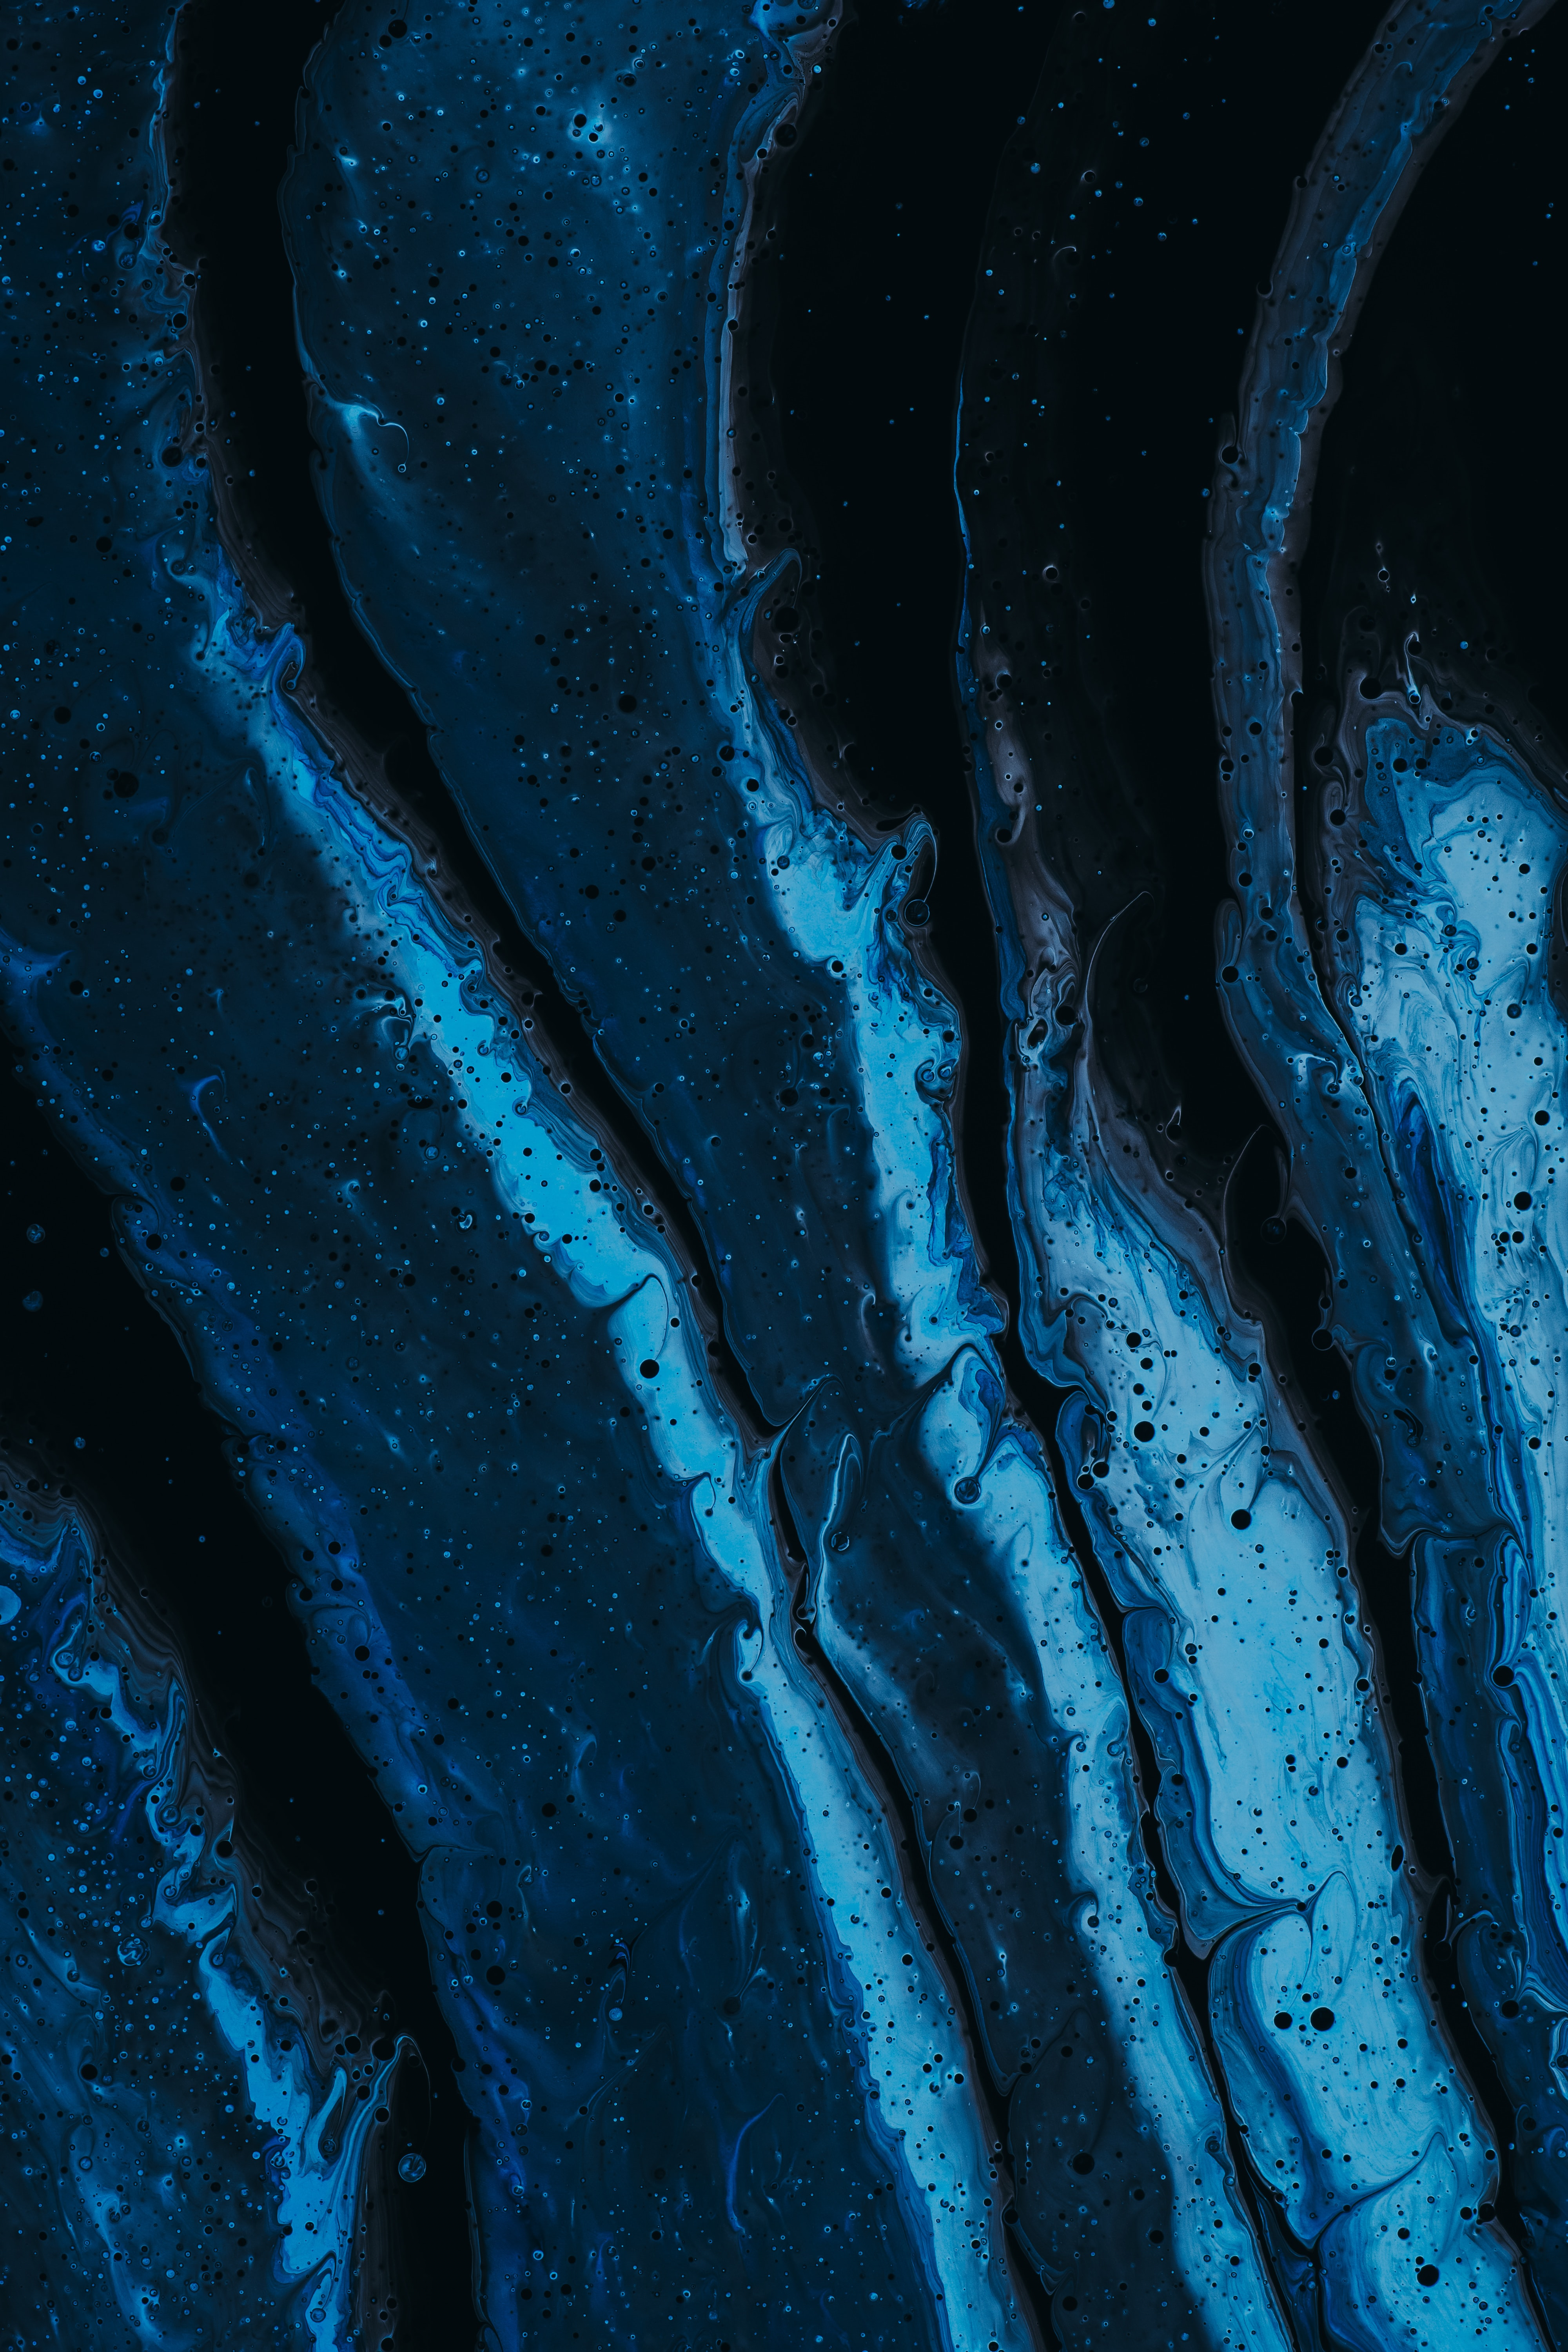 95616 download wallpaper Abstract, Divorces, Liquid, Paint screensavers and pictures for free